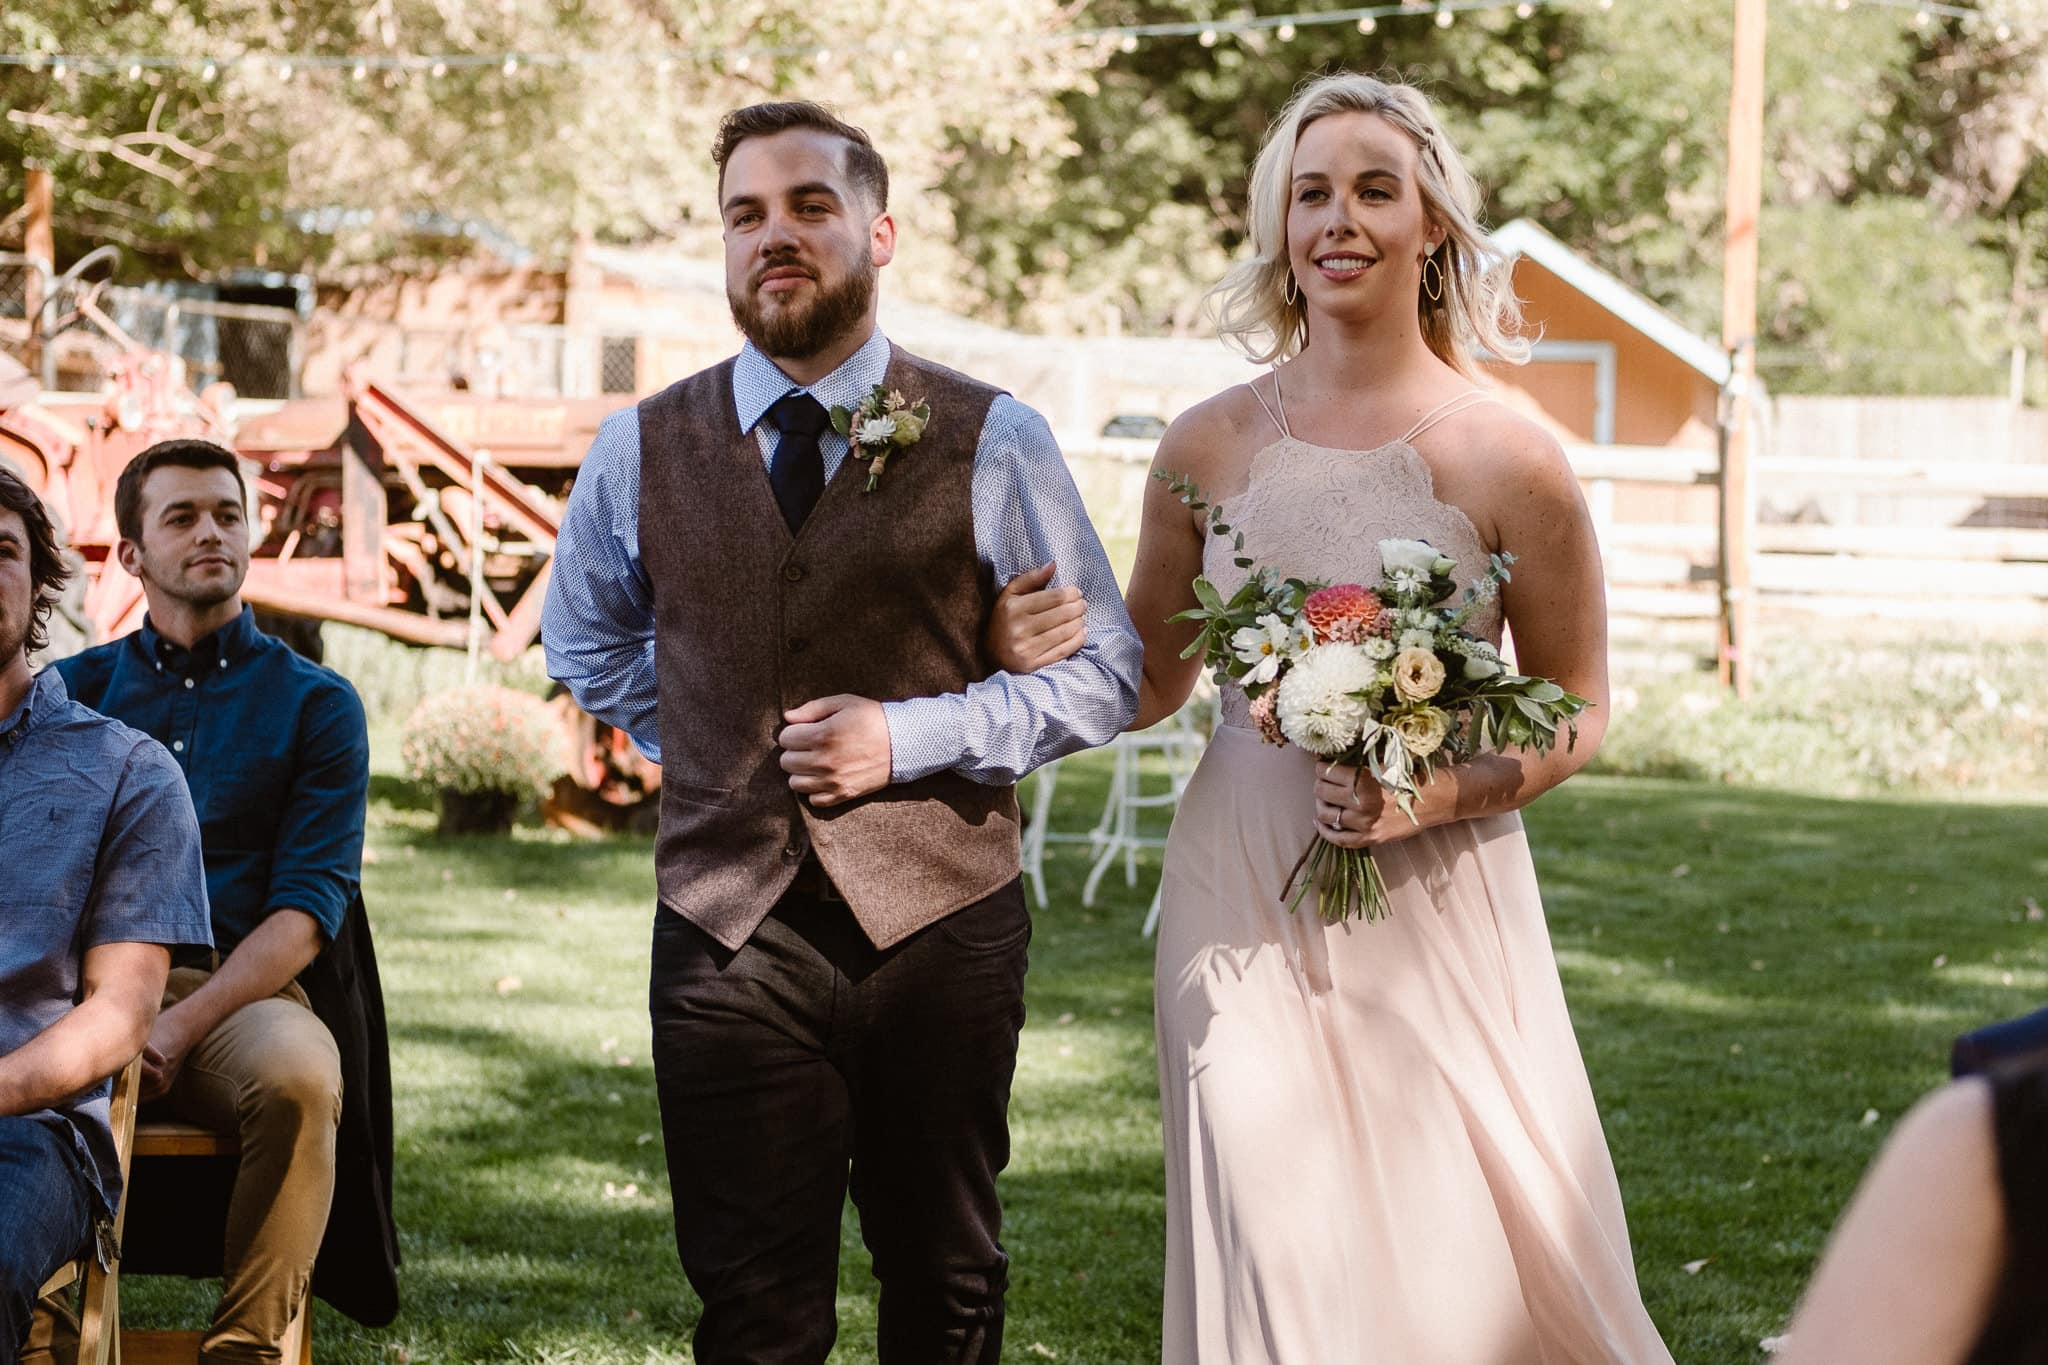 Lyons Farmette wedding photographer, Colorado intimate wedding photographer, wedding ceremony, bridesmaid and groomsman walking down aisle